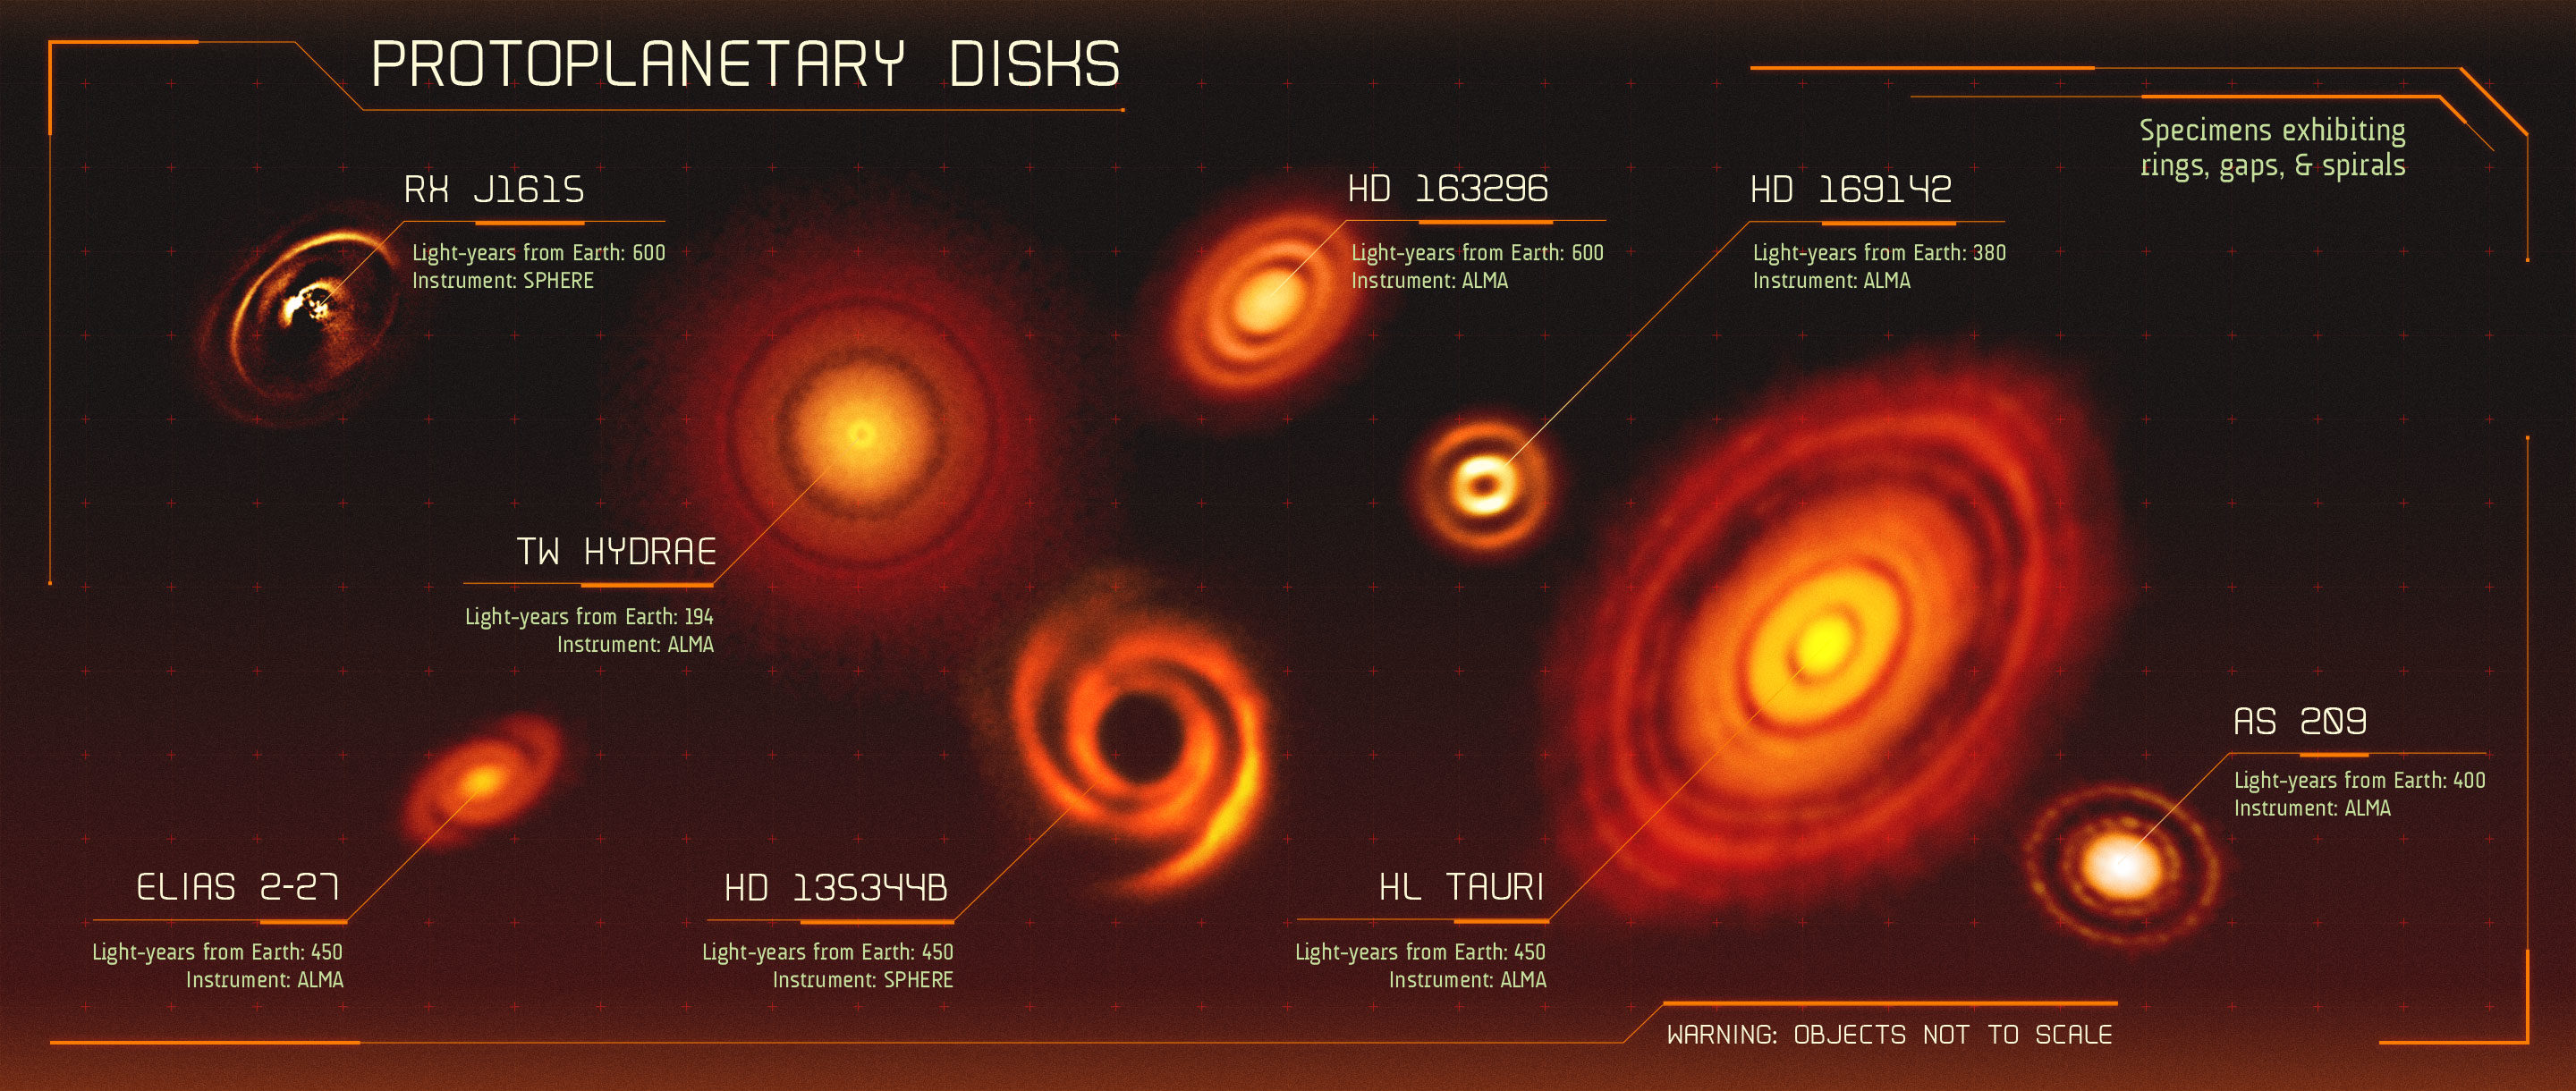 Composite of numerous protoplanetary disc images taken by SPHERE